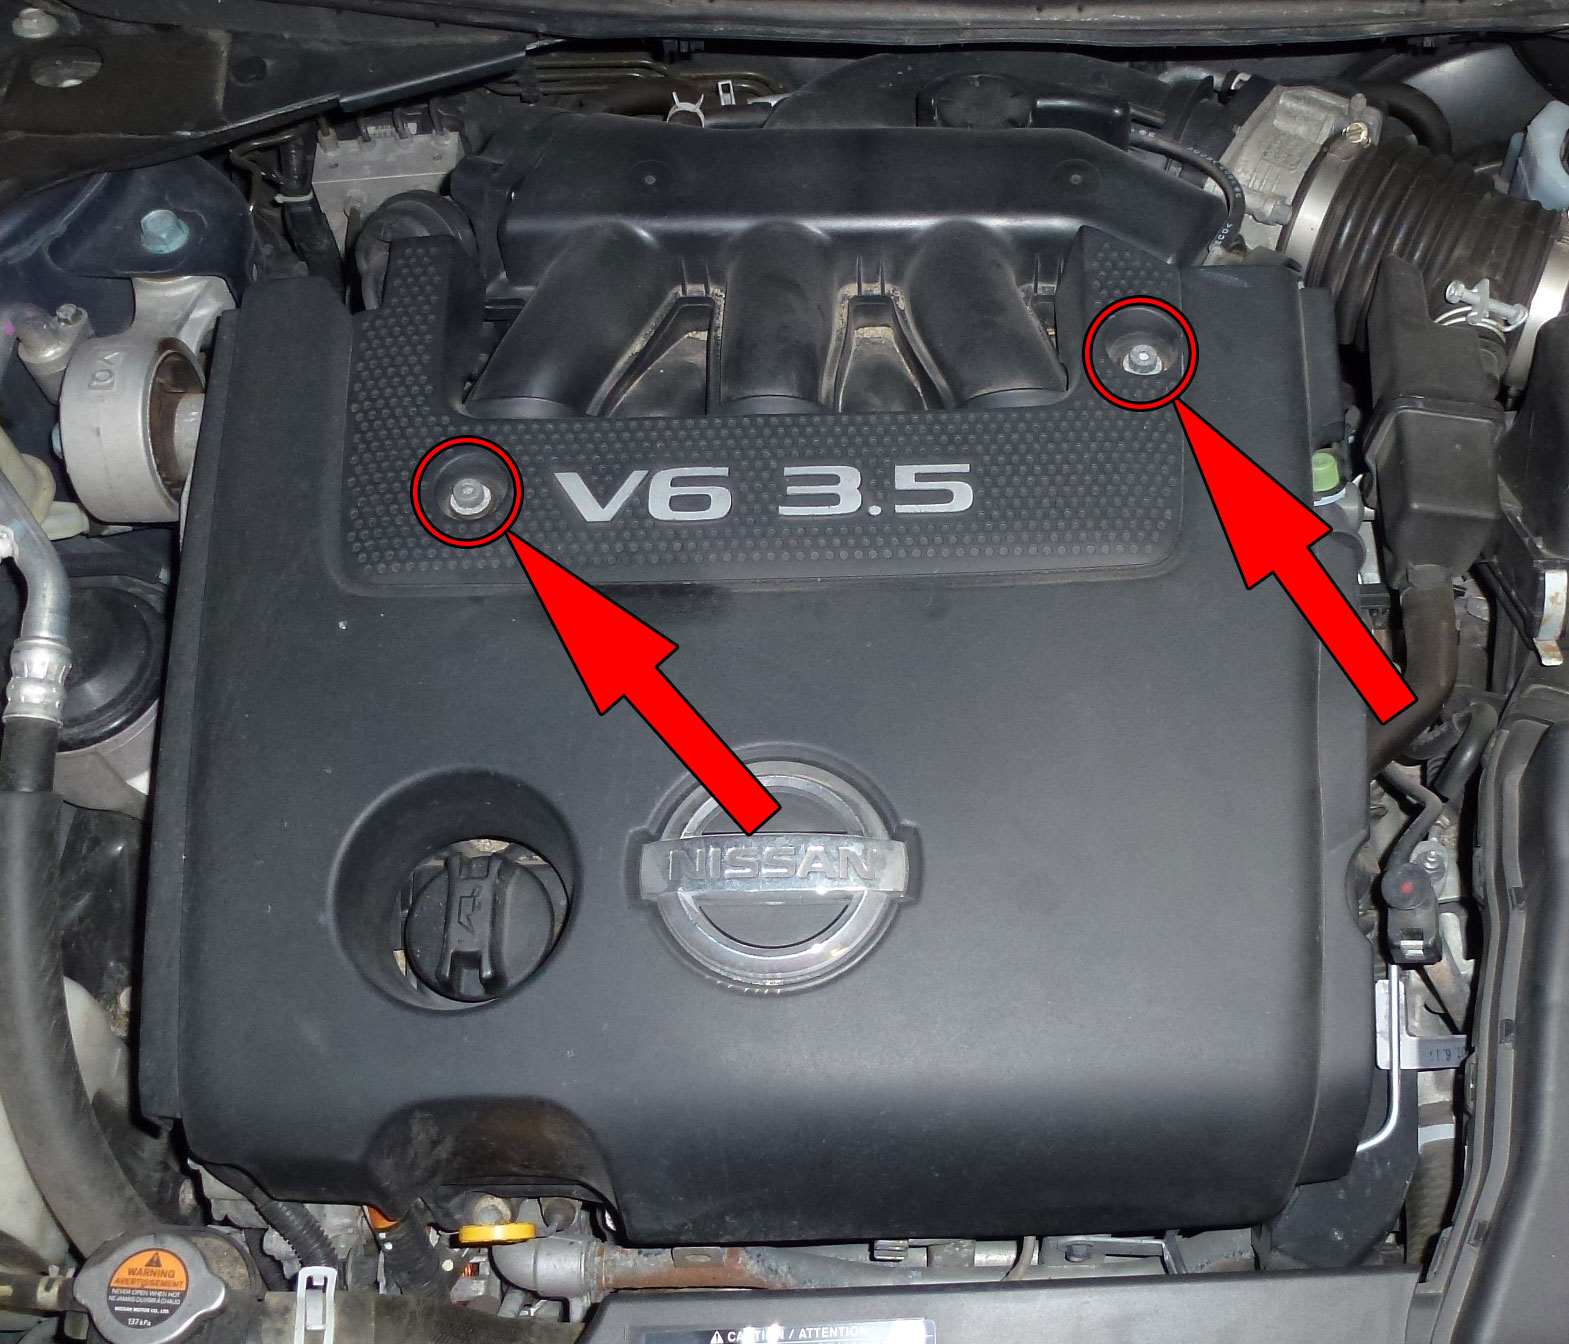 Start by removing the engine cover. Remove two allen bolts.